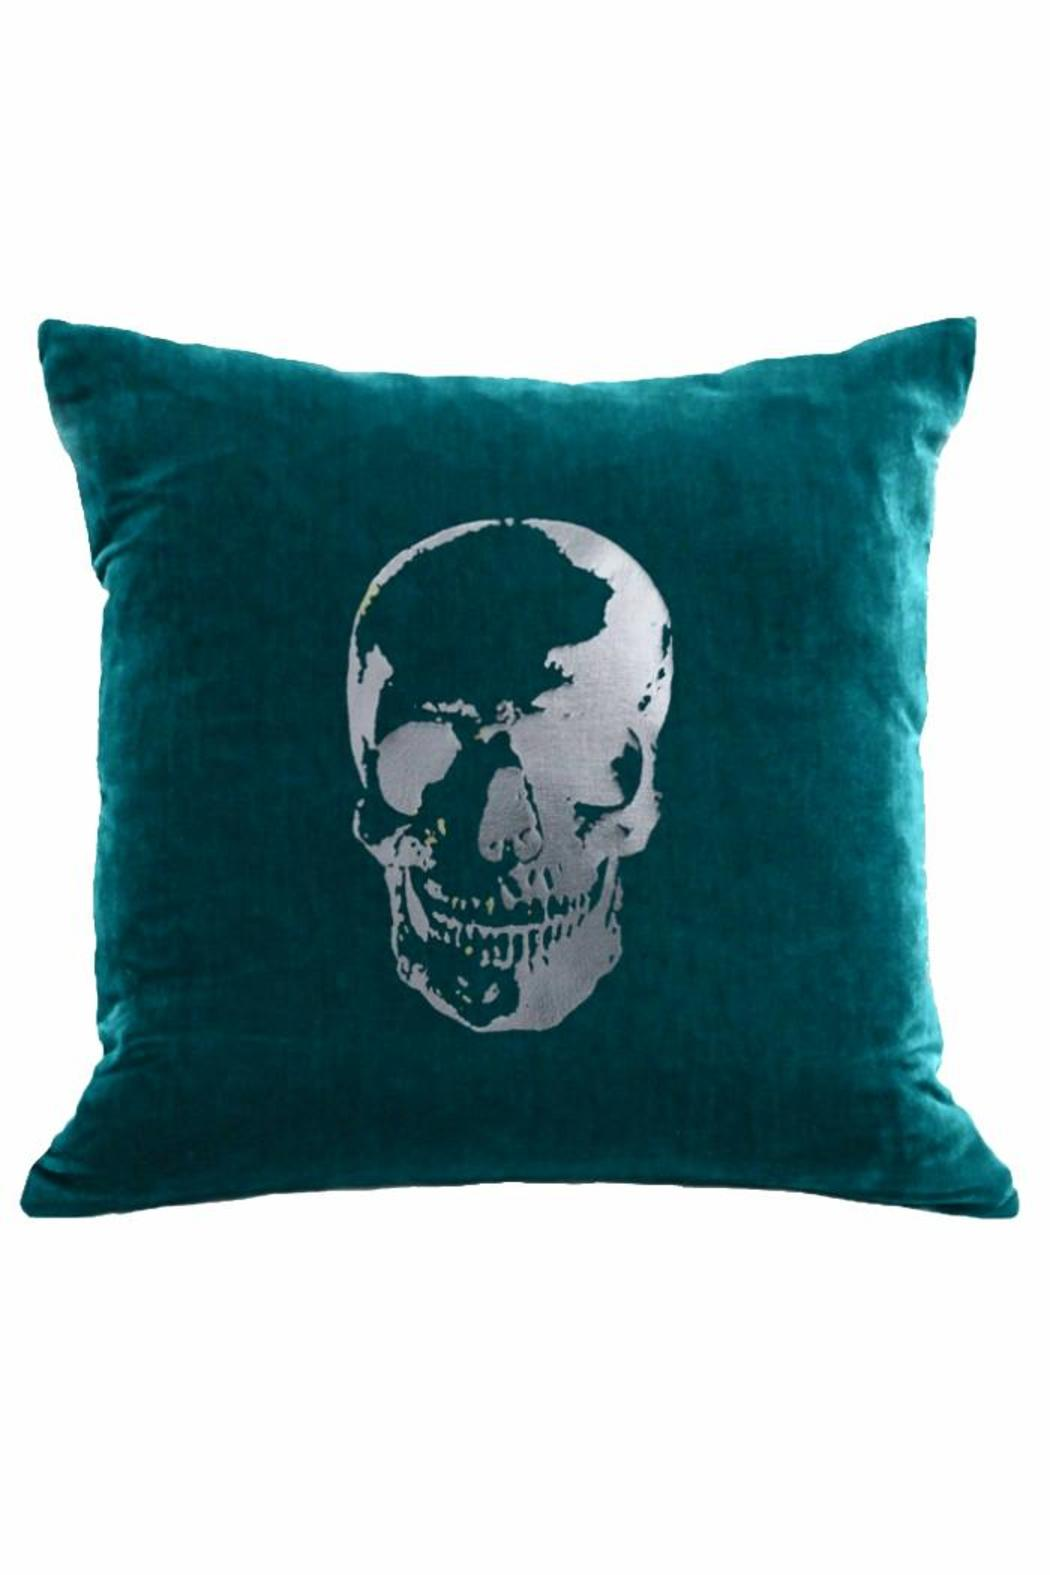 DAVINCI Velvet Skull Pillow from California by DAVINCI Los Angeles ...